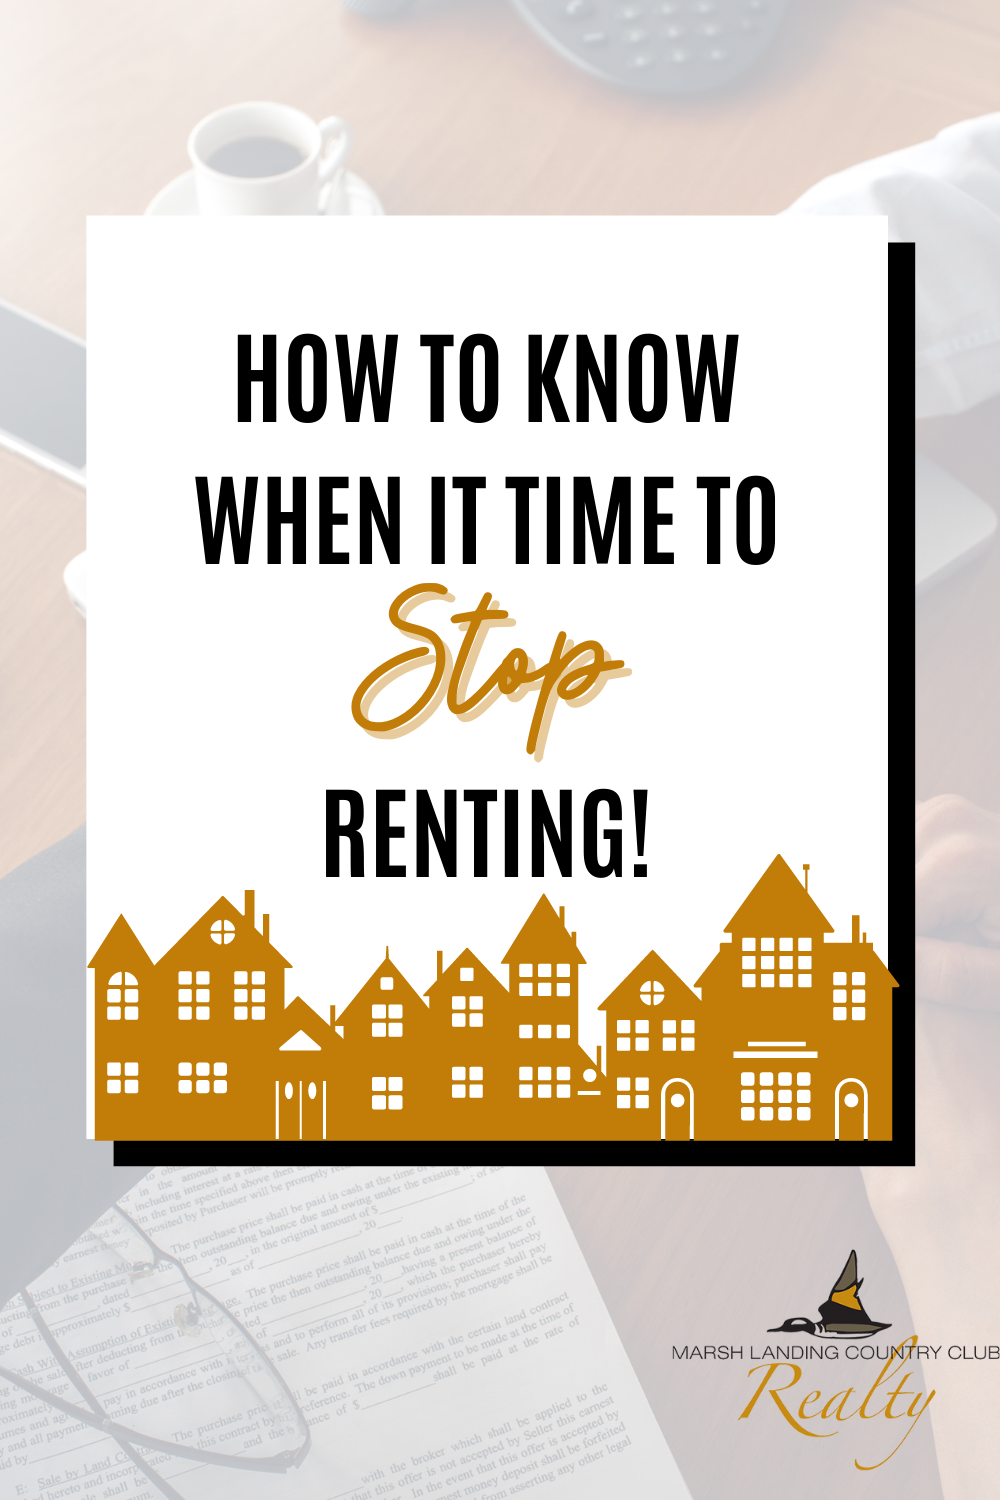 How to Know When It's Time to Stop Renting